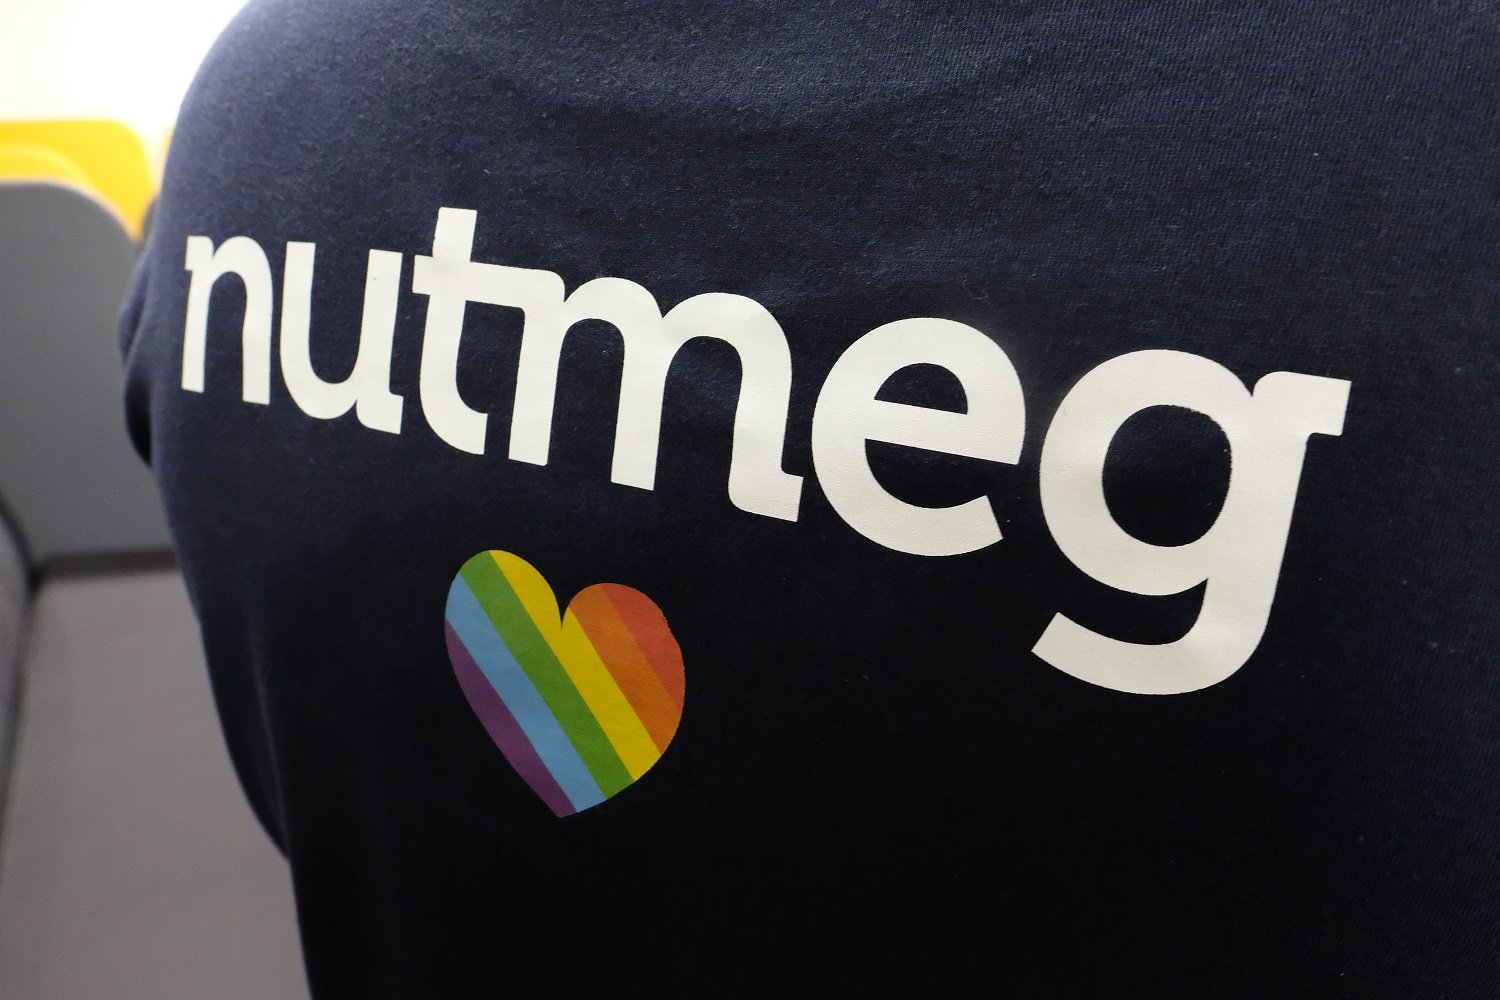 nutmeg t-shirt